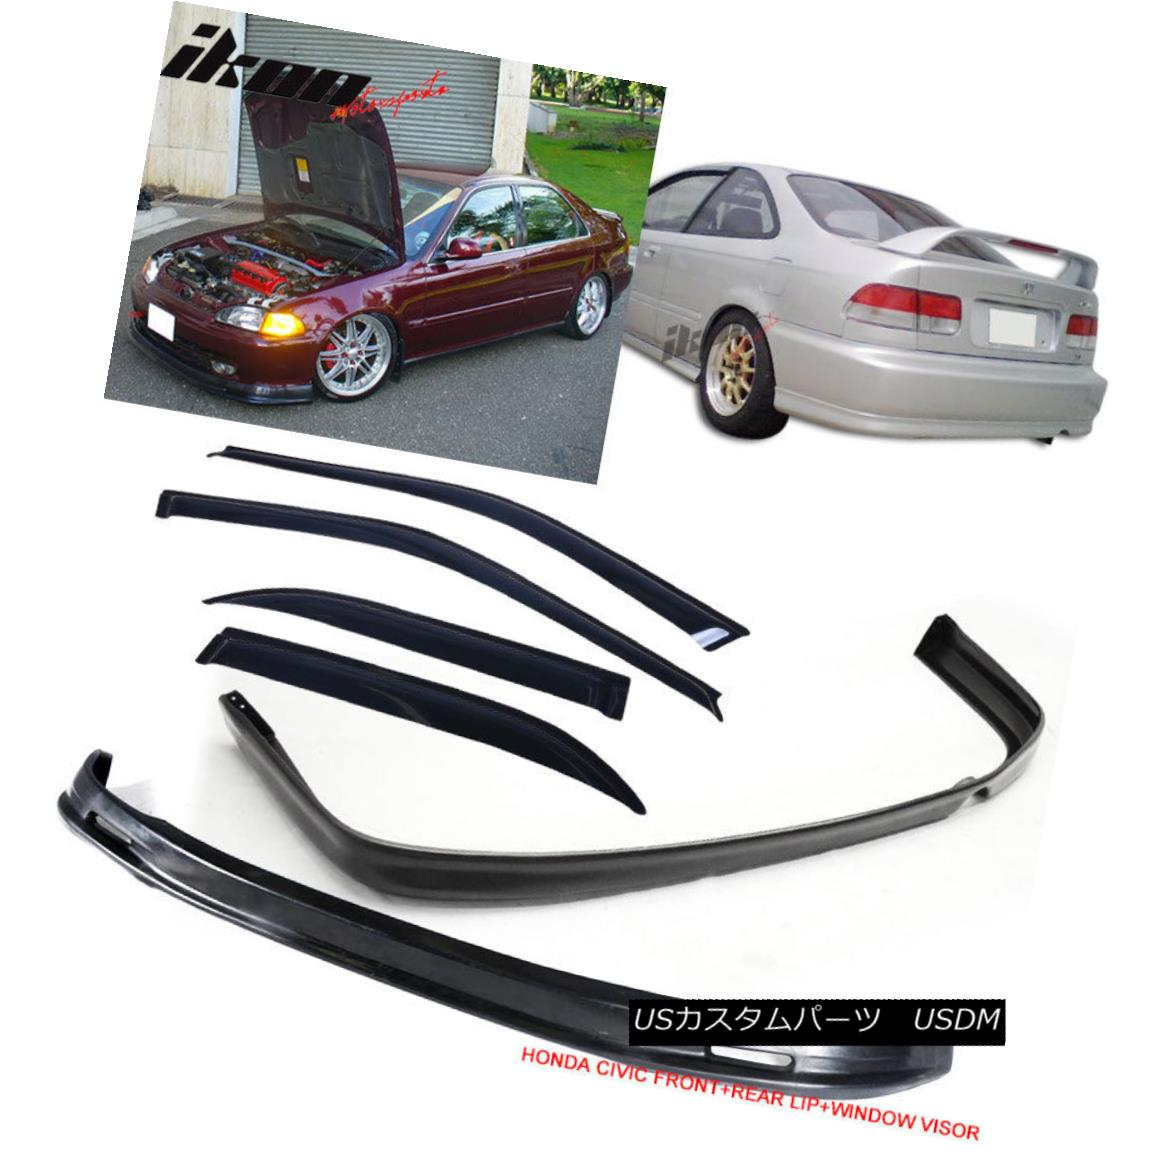 E60 For BMW M5 Style 5-Series Rear Trunk Spoiler Wing 04-10 ABS Paint #A08